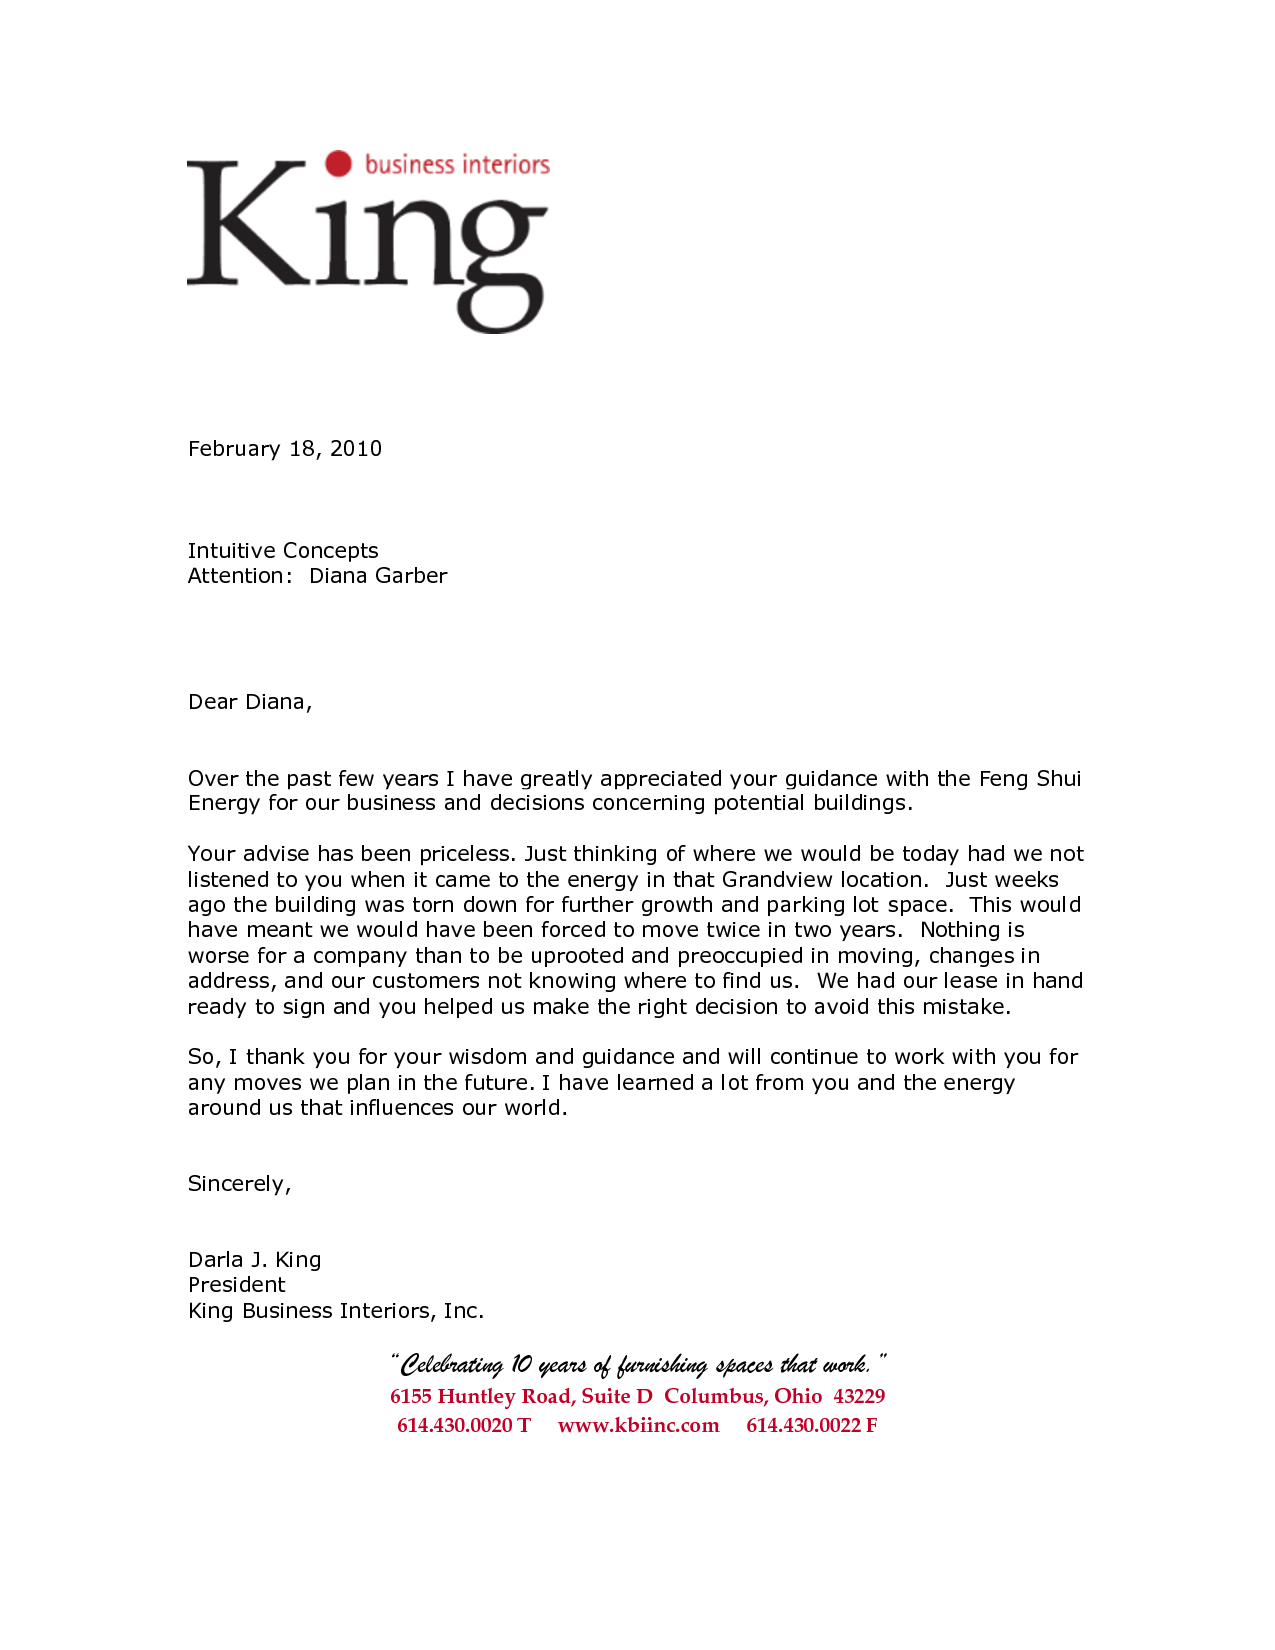 business letter of reference template king business interiors business letter of reference template king business interiors reference letter